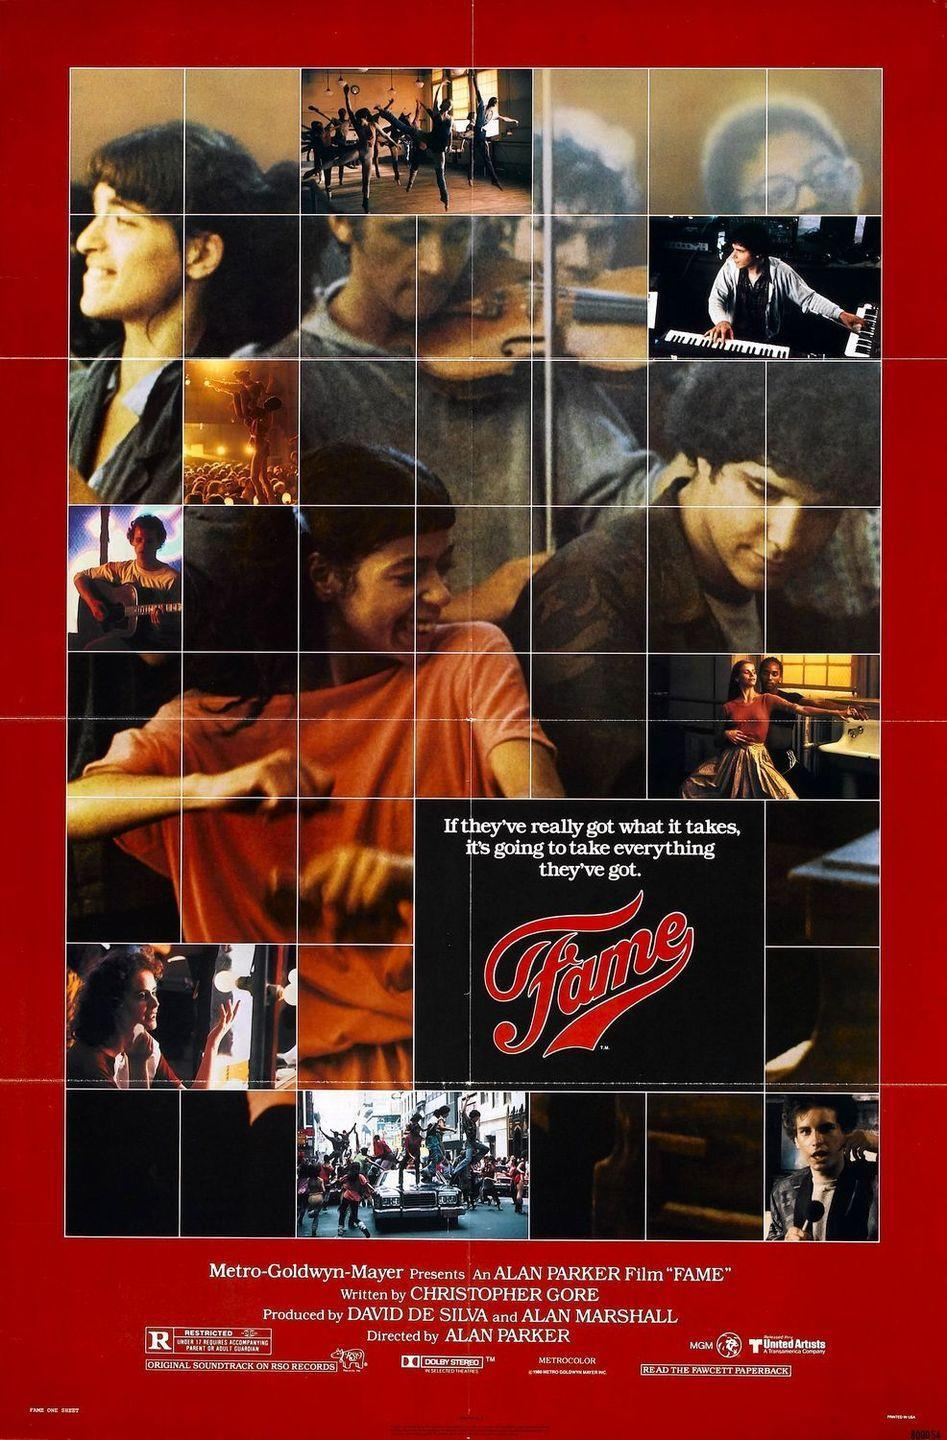 """<p>Some musicals are all about the glitz and glamour. This one explores the dark side of the entertainment industry as experienced by a group of students at a performing arts high school in New York City. Not to mention Irene Cara's <a href=""""https://www.amazon.com/Fame-Irene-Cara/dp/B00008OP1Z?tag=syn-yahoo-20&ascsubtag=%5Bartid%7C10072.g.27734413%5Bsrc%7Cyahoo-us"""" rel=""""nofollow noopener"""" target=""""_blank"""" data-ylk=""""slk:title track"""" class=""""link rapid-noclick-resp"""">title track</a> is still an irresistible toe-tapper decades after its release.</p><p><a class=""""link rapid-noclick-resp"""" href=""""https://www.amazon.com/Fame-Irene-Cara/dp/B0091WF2GK/ref=sr_1_2?tag=syn-yahoo-20&ascsubtag=%5Bartid%7C10072.g.27734413%5Bsrc%7Cyahoo-us"""" rel=""""nofollow noopener"""" target=""""_blank"""" data-ylk=""""slk:WATCH NOW"""">WATCH NOW</a></p>"""